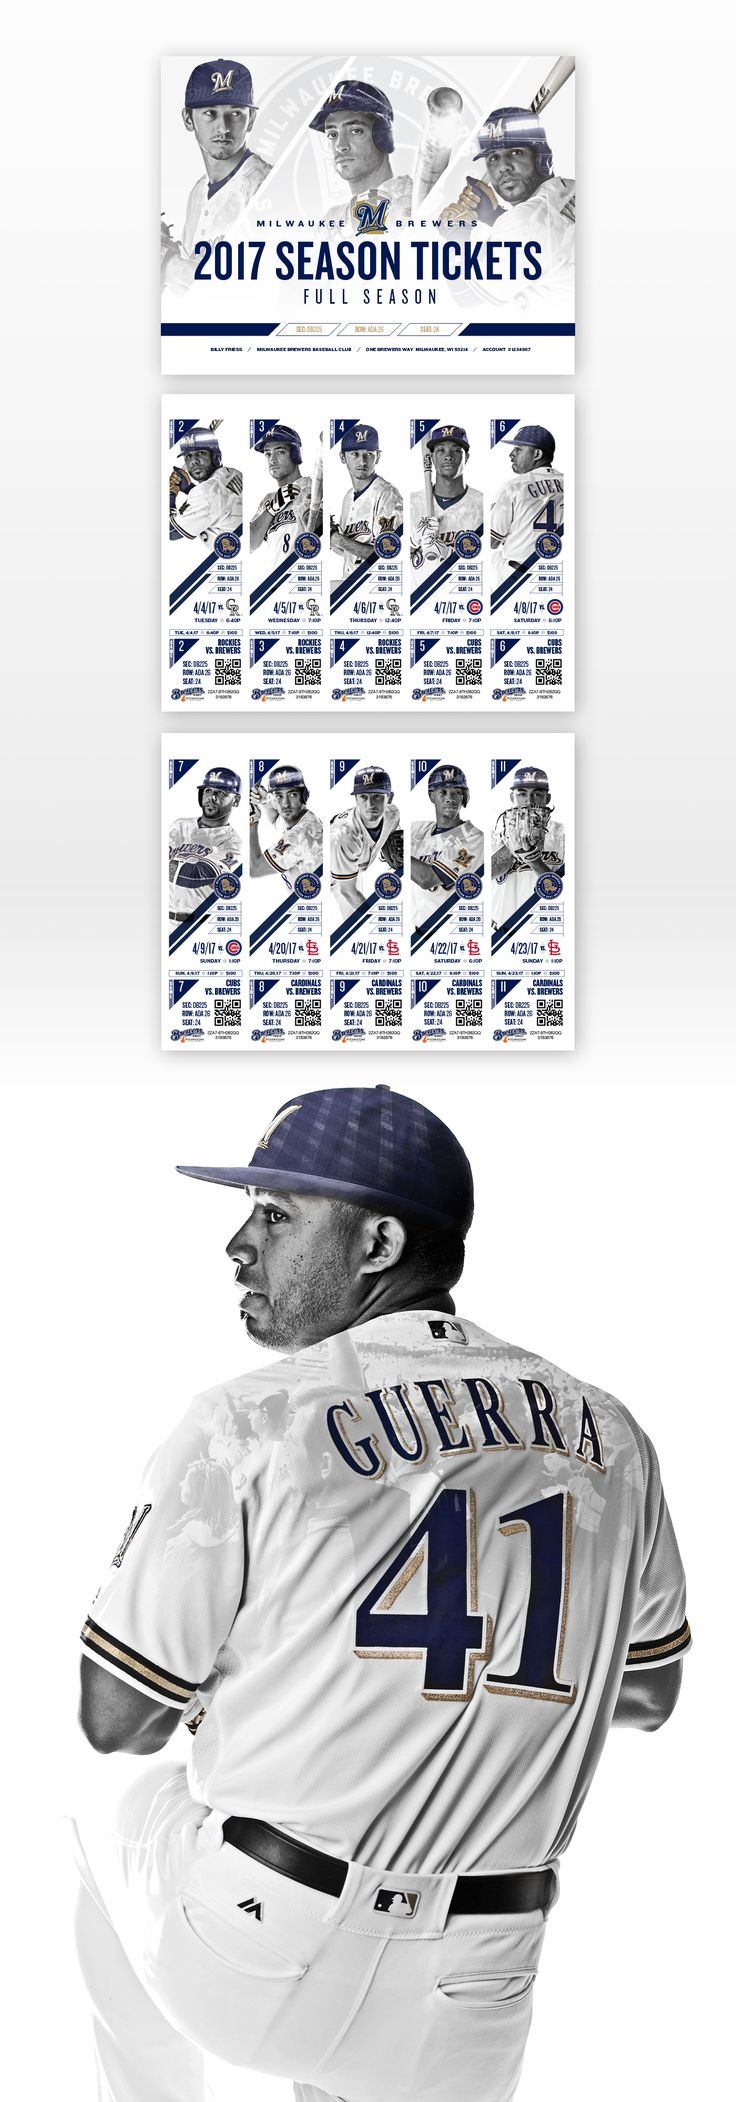 Milwaukee Brewers 2017 Season Tickets & Parking Passes on Behance